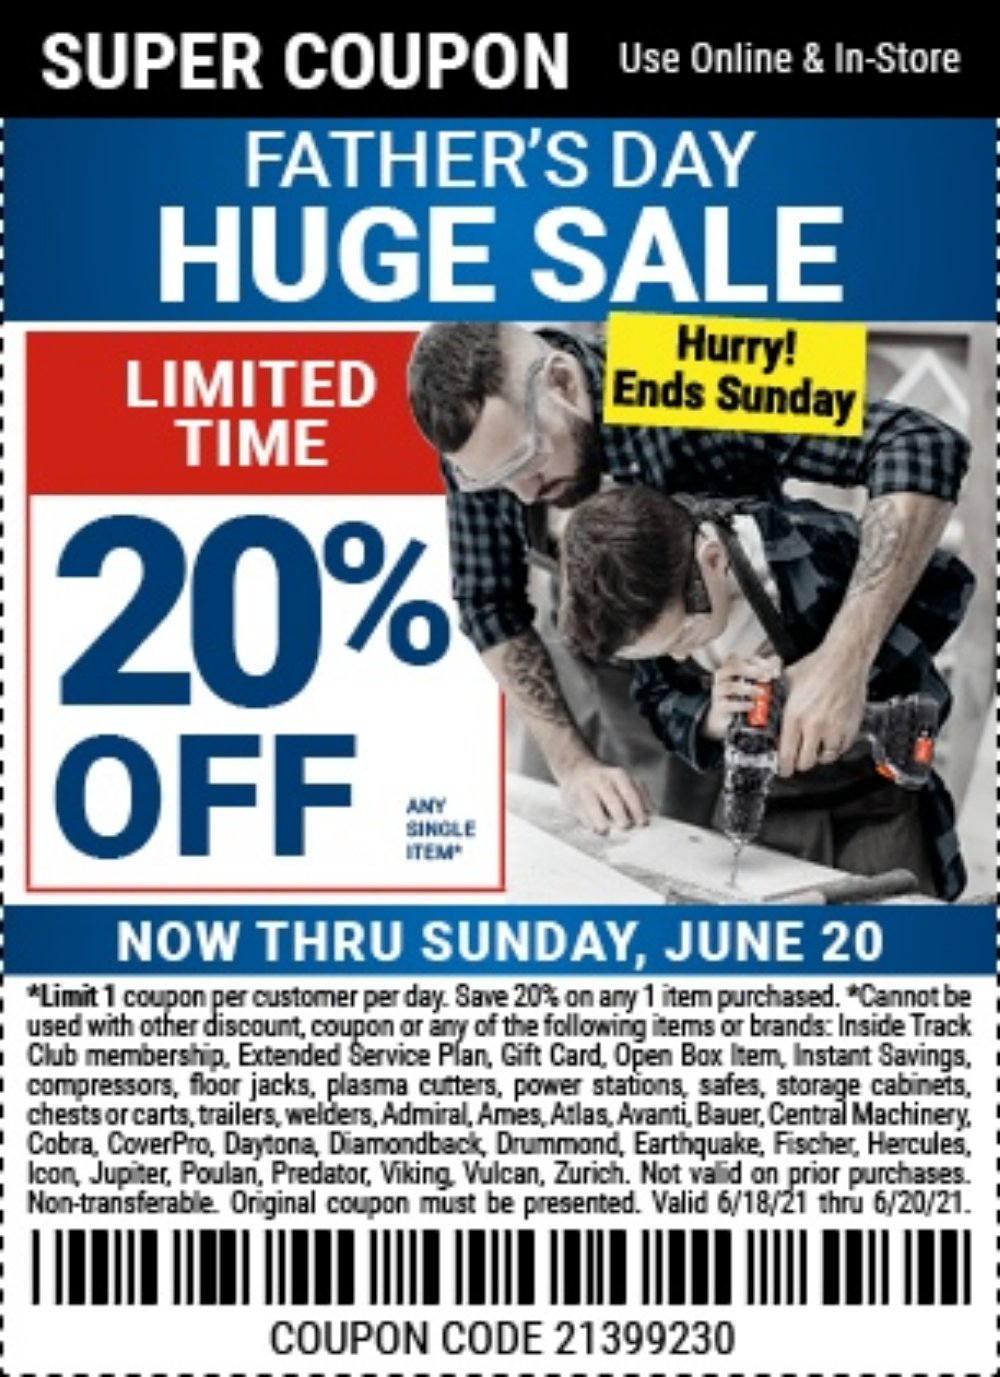 Harbor Freight Coupon, HF Coupons - 20% off single item